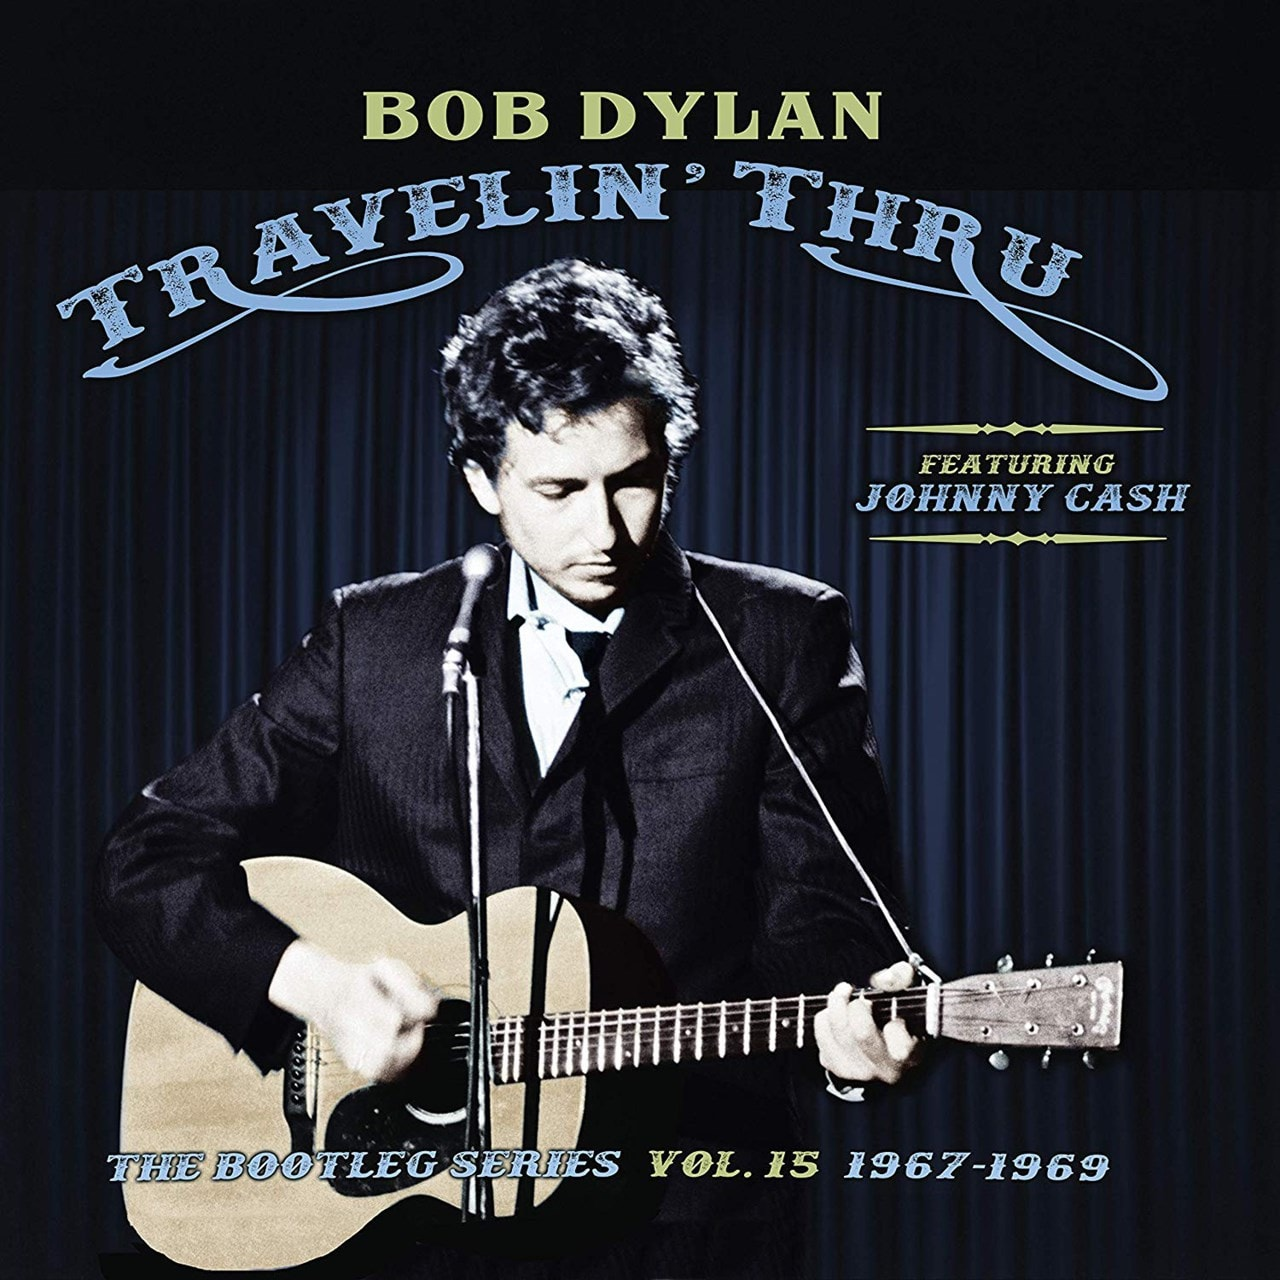 Travelin' Thru Featuring Johnny Cash: 1967-1969 - 1